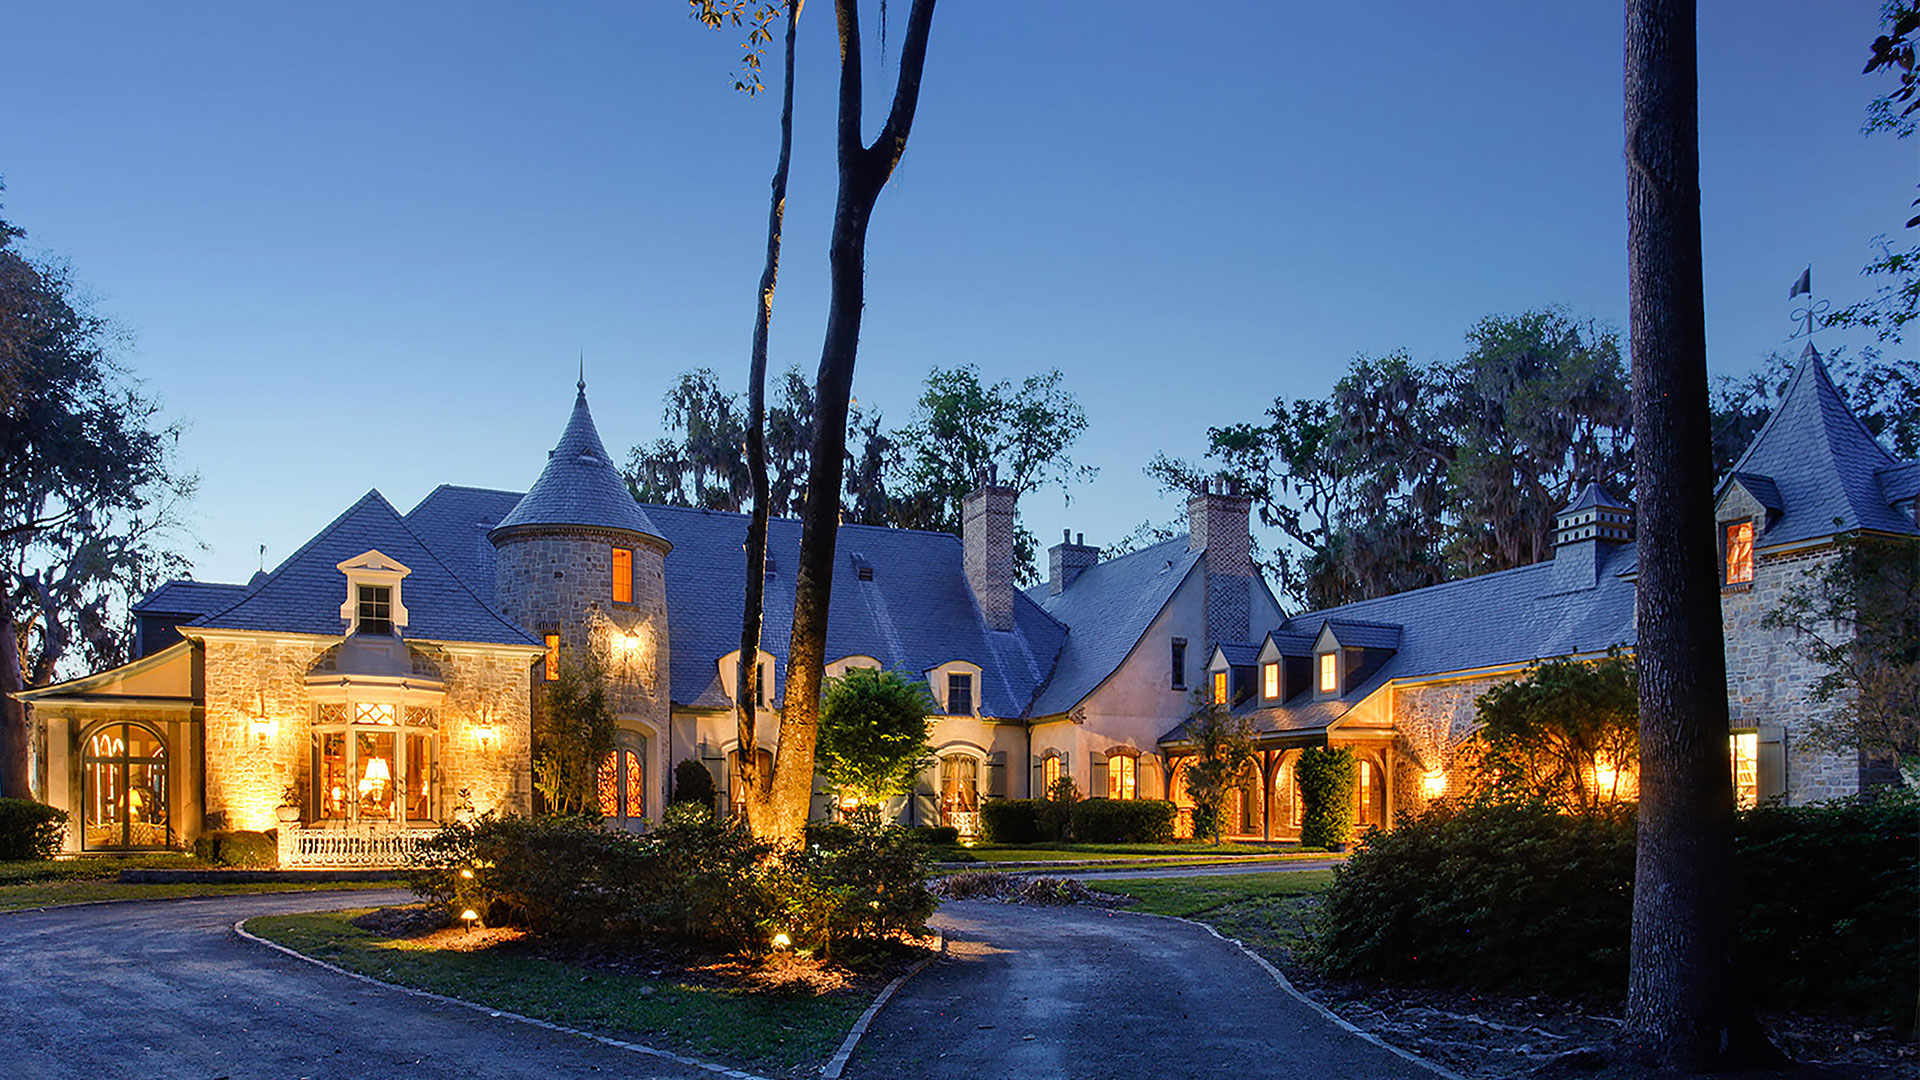 Colleton River Club French Chateau Exterior Nighttime